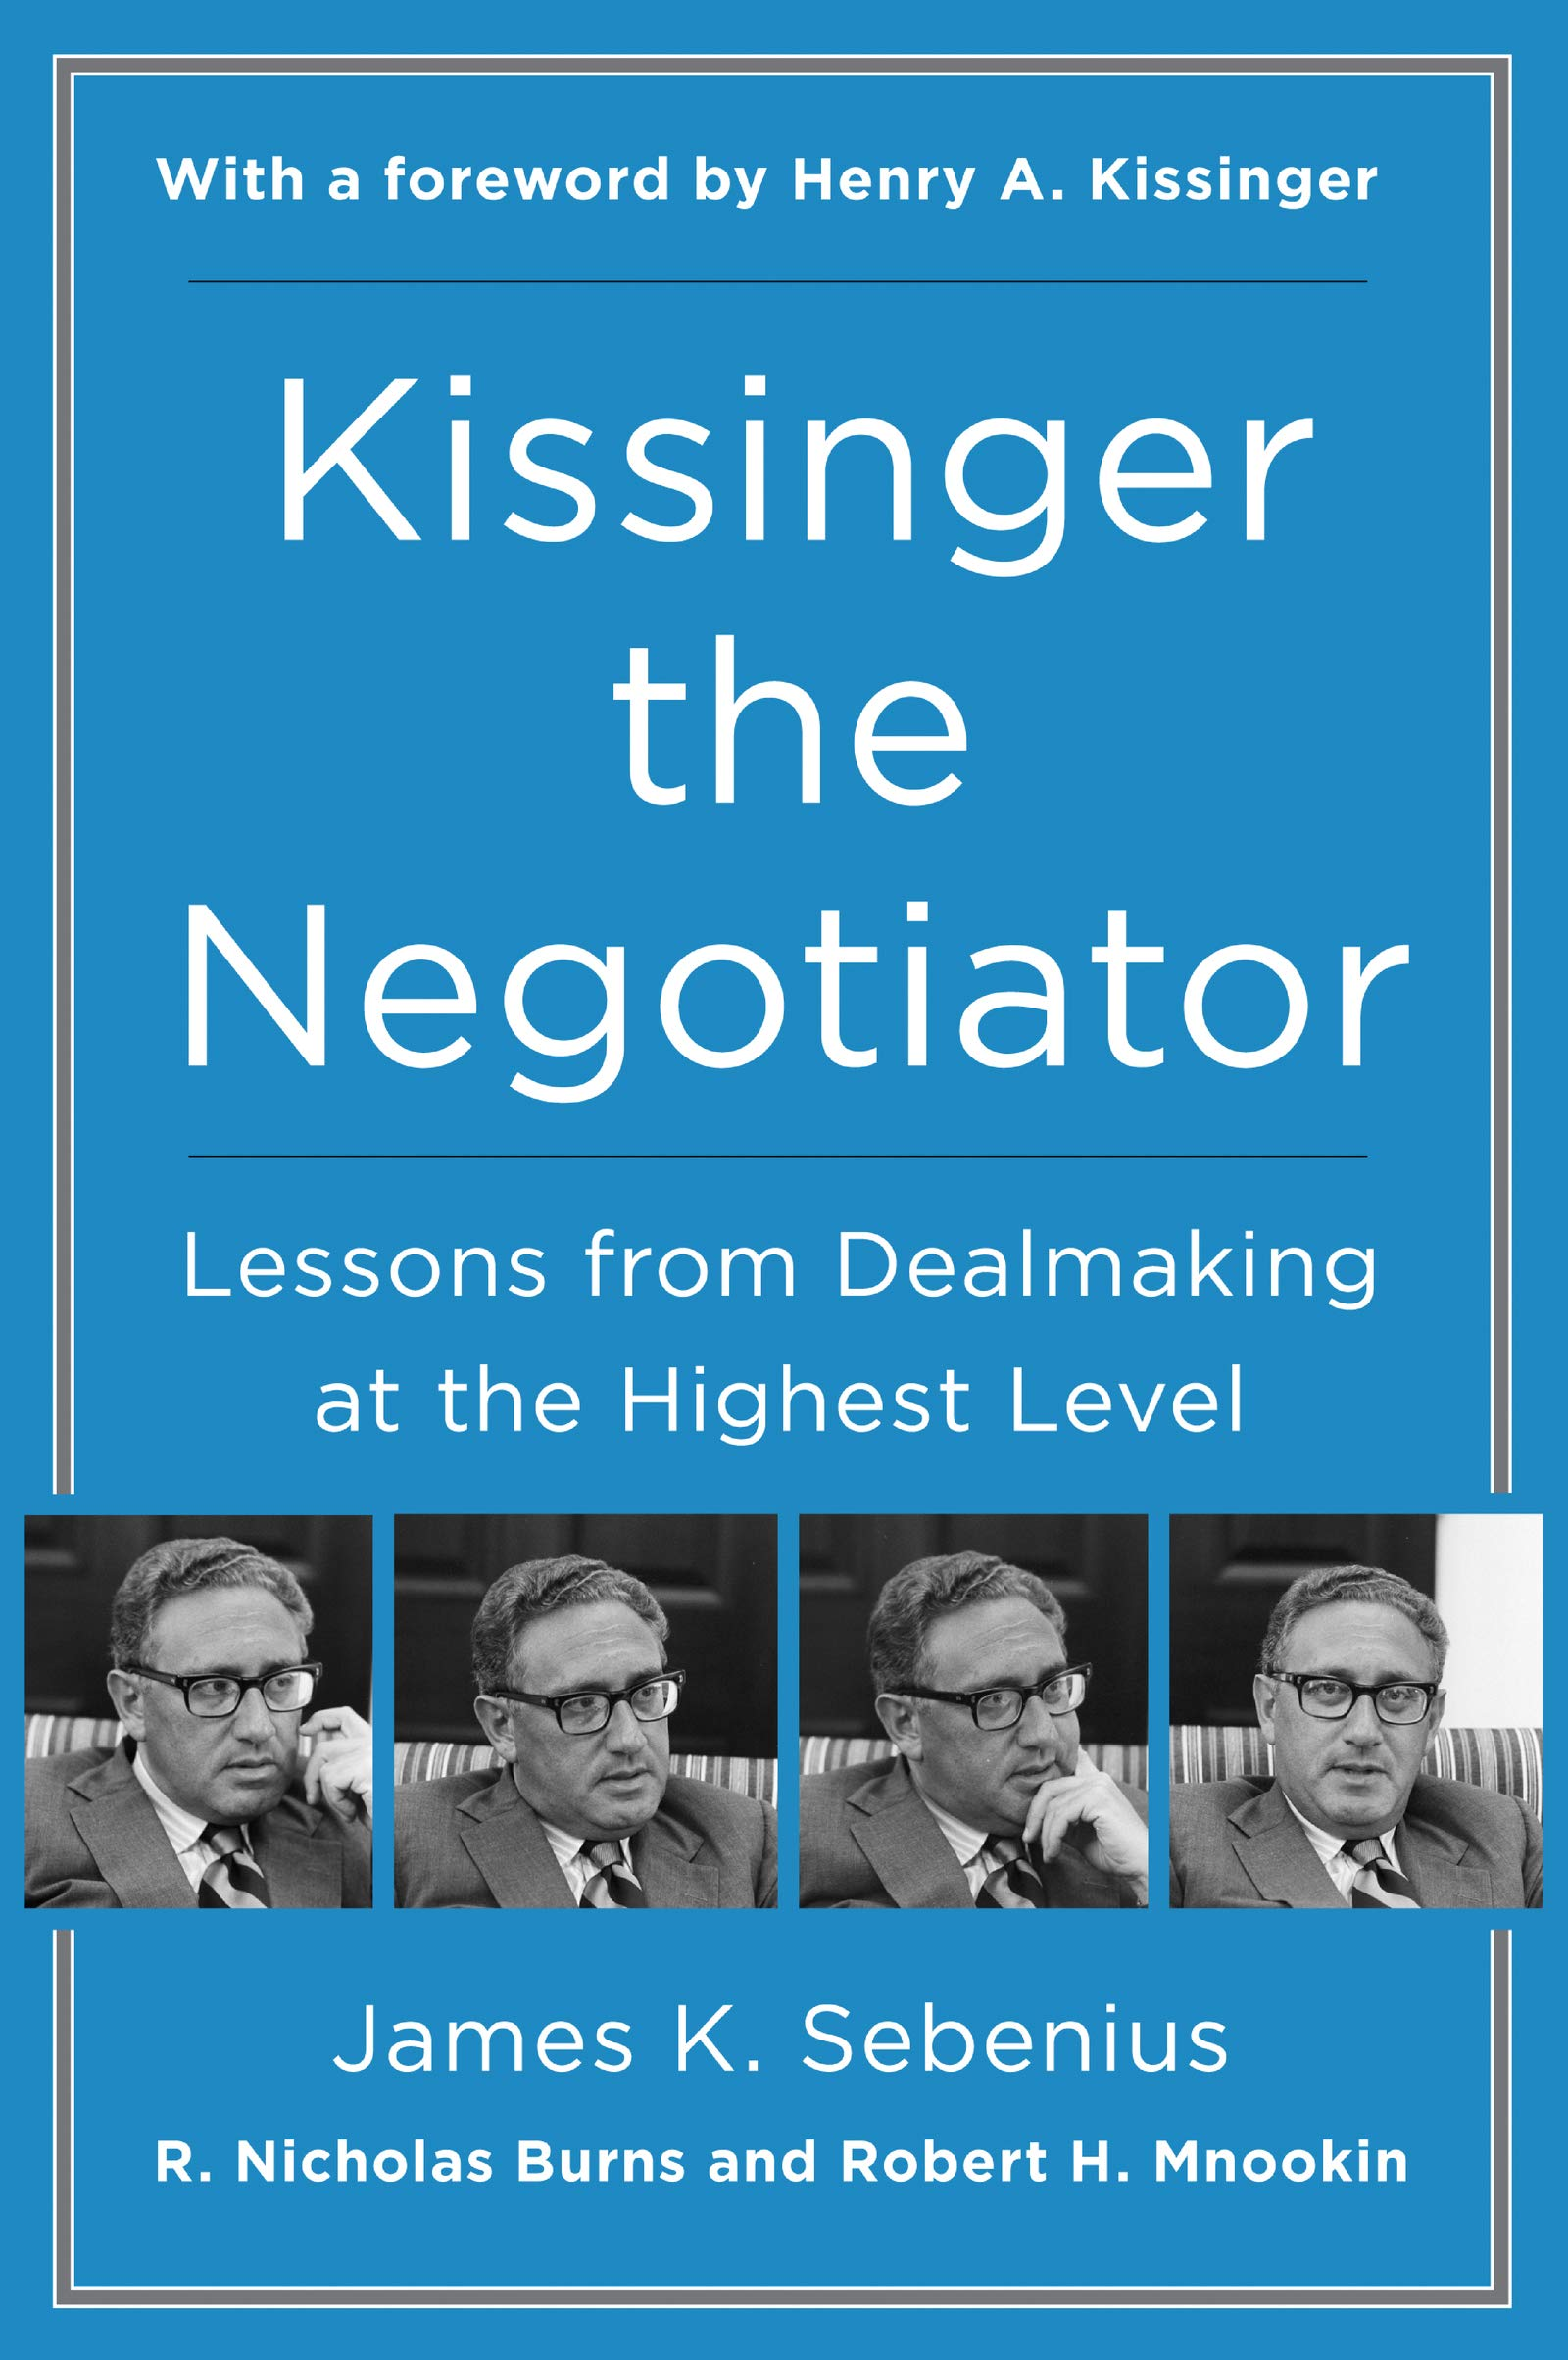 Image OfKissinger The Negotiator: Lessons From Dealmaking At The Highest Level (English Edition)